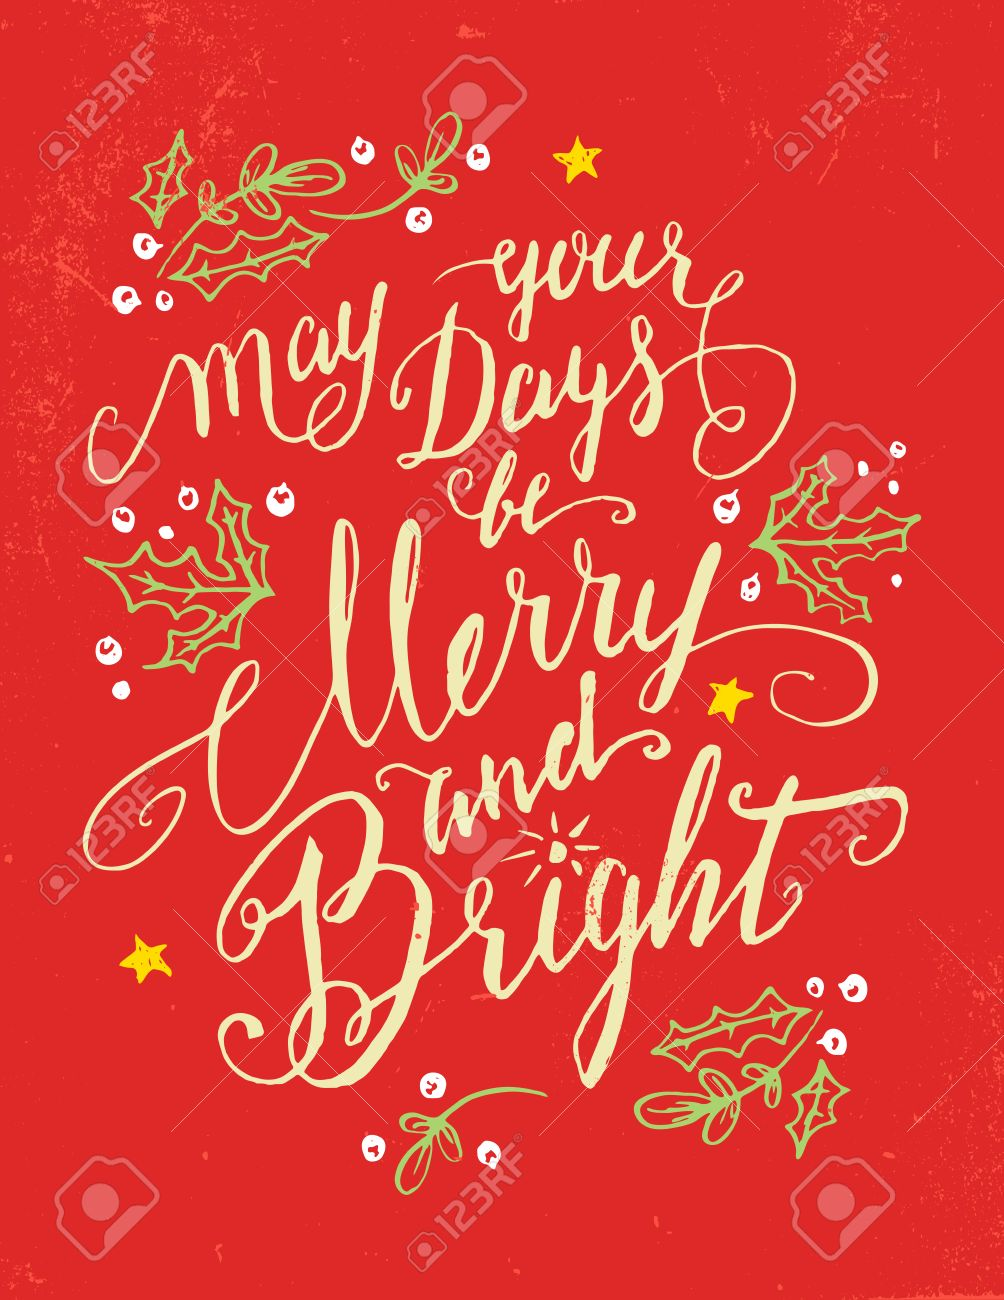 Stock illustration 3d red text quot yes quot stock illustration royalty - Holiday Greeting Card Calligraphy Quote In Vintage Style